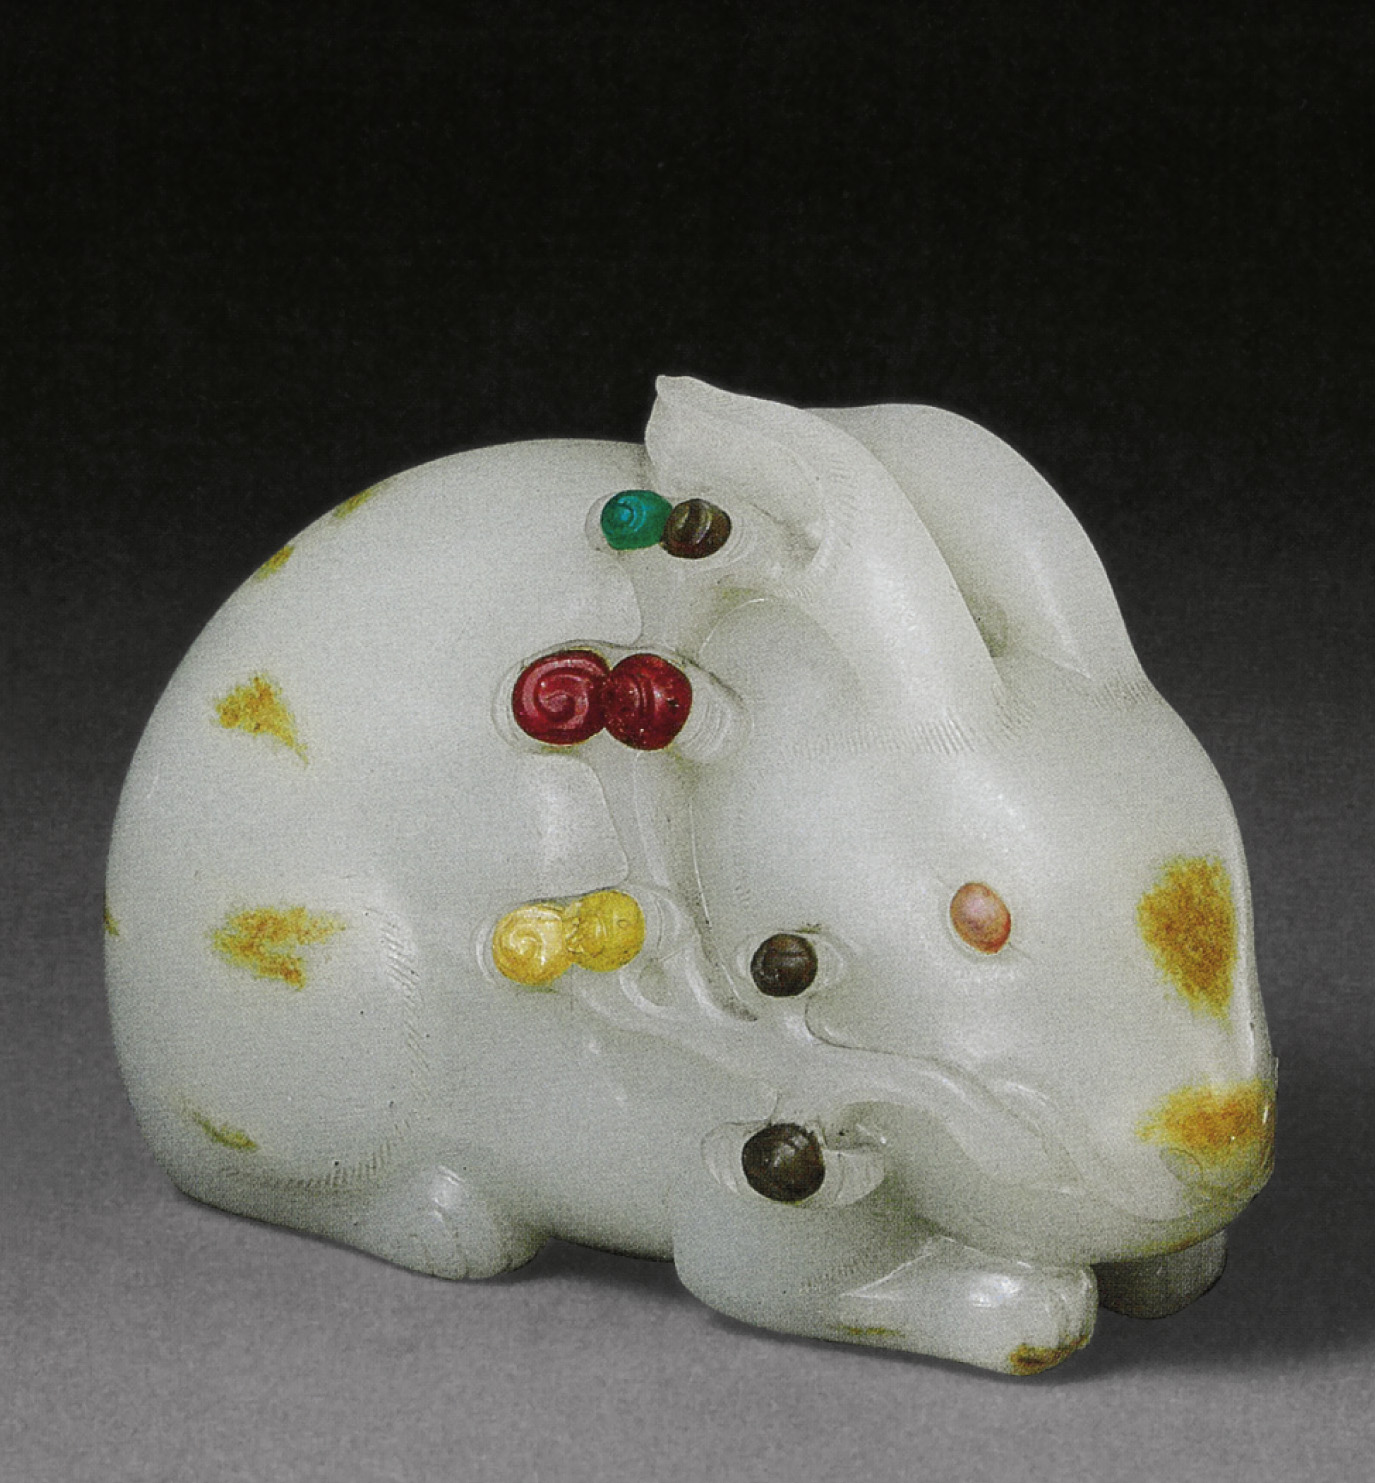 AN EXQUISITE AND VERY RARE WHITE JADE HORSE GROUP